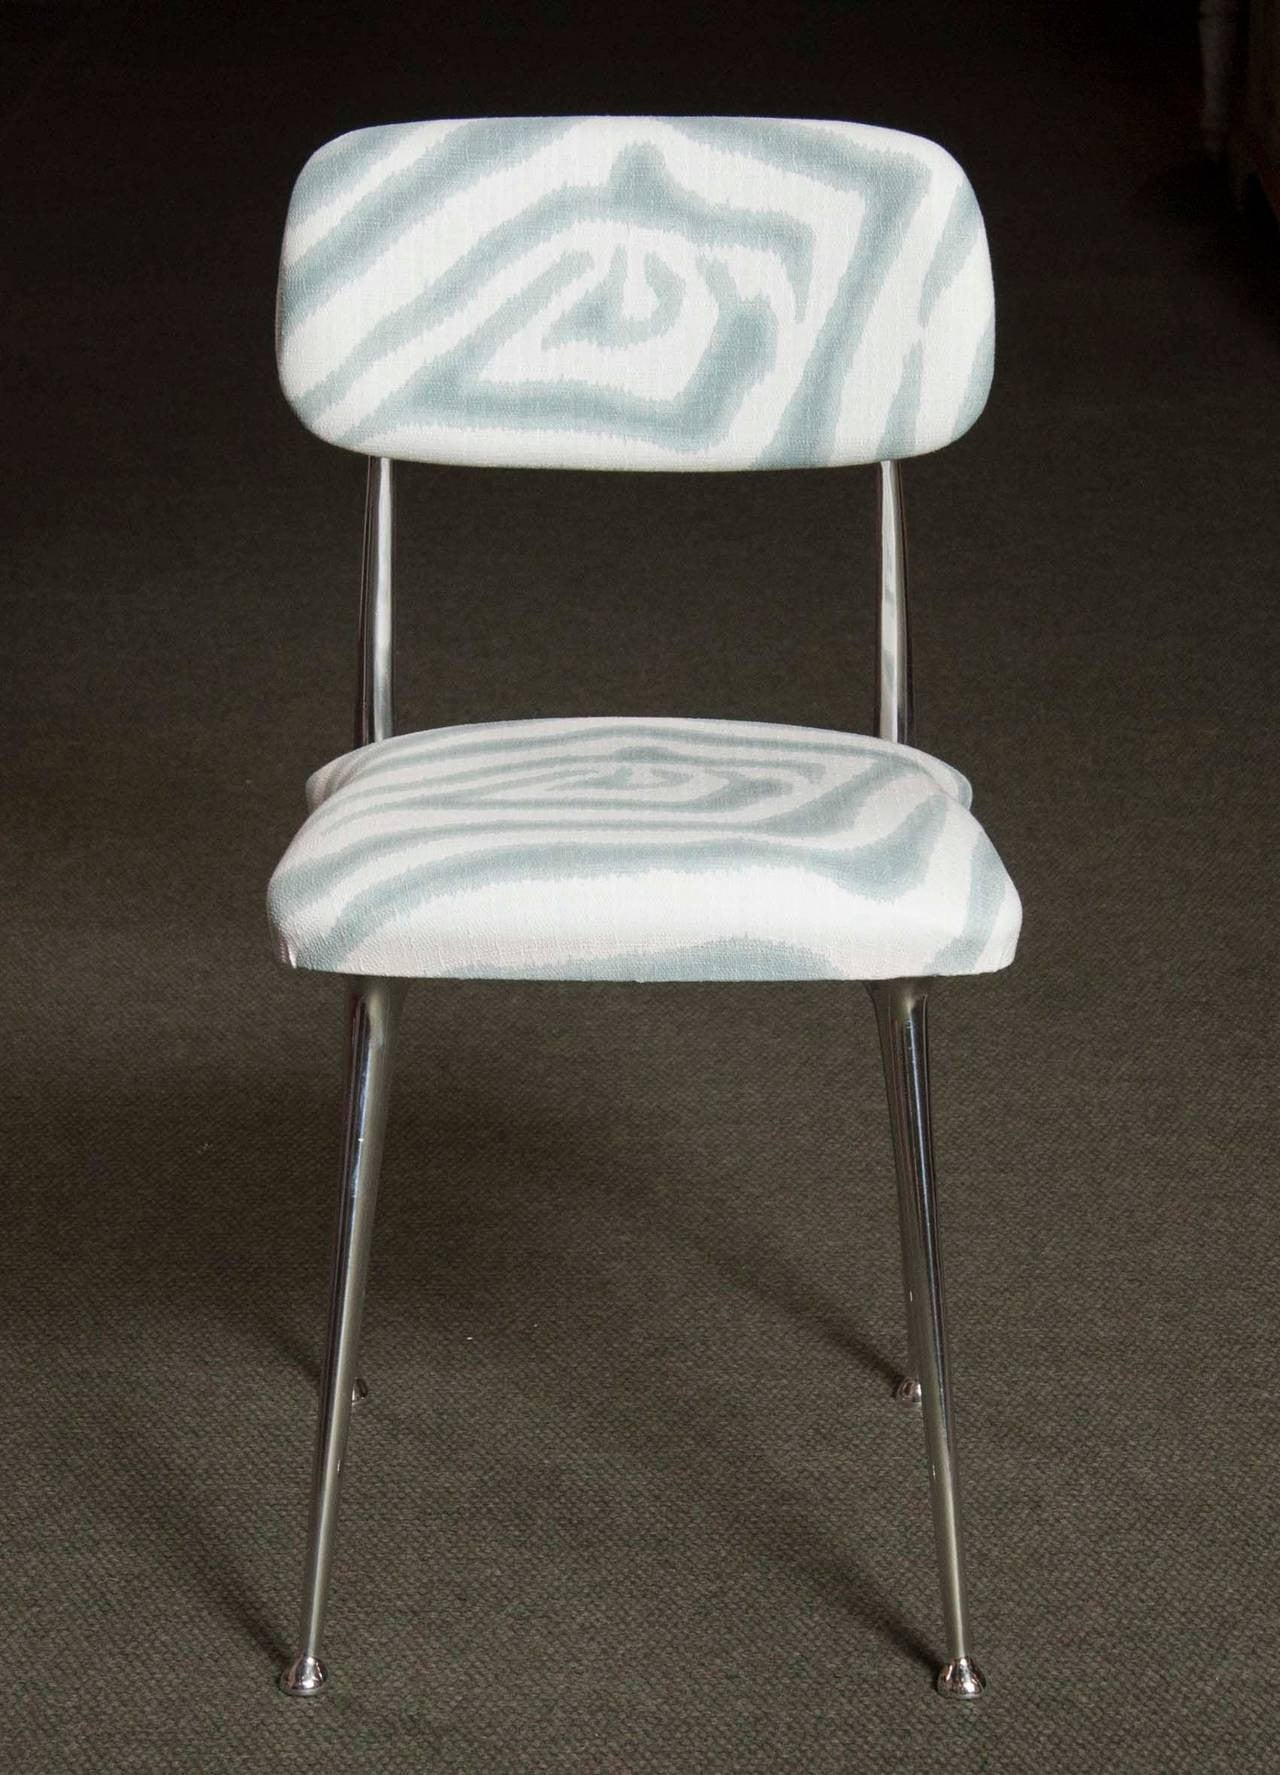 set of  polished aluminum dining chairs by shelby williams  - set of  polished aluminum dining chairs by shelby williams (pricedseparately)